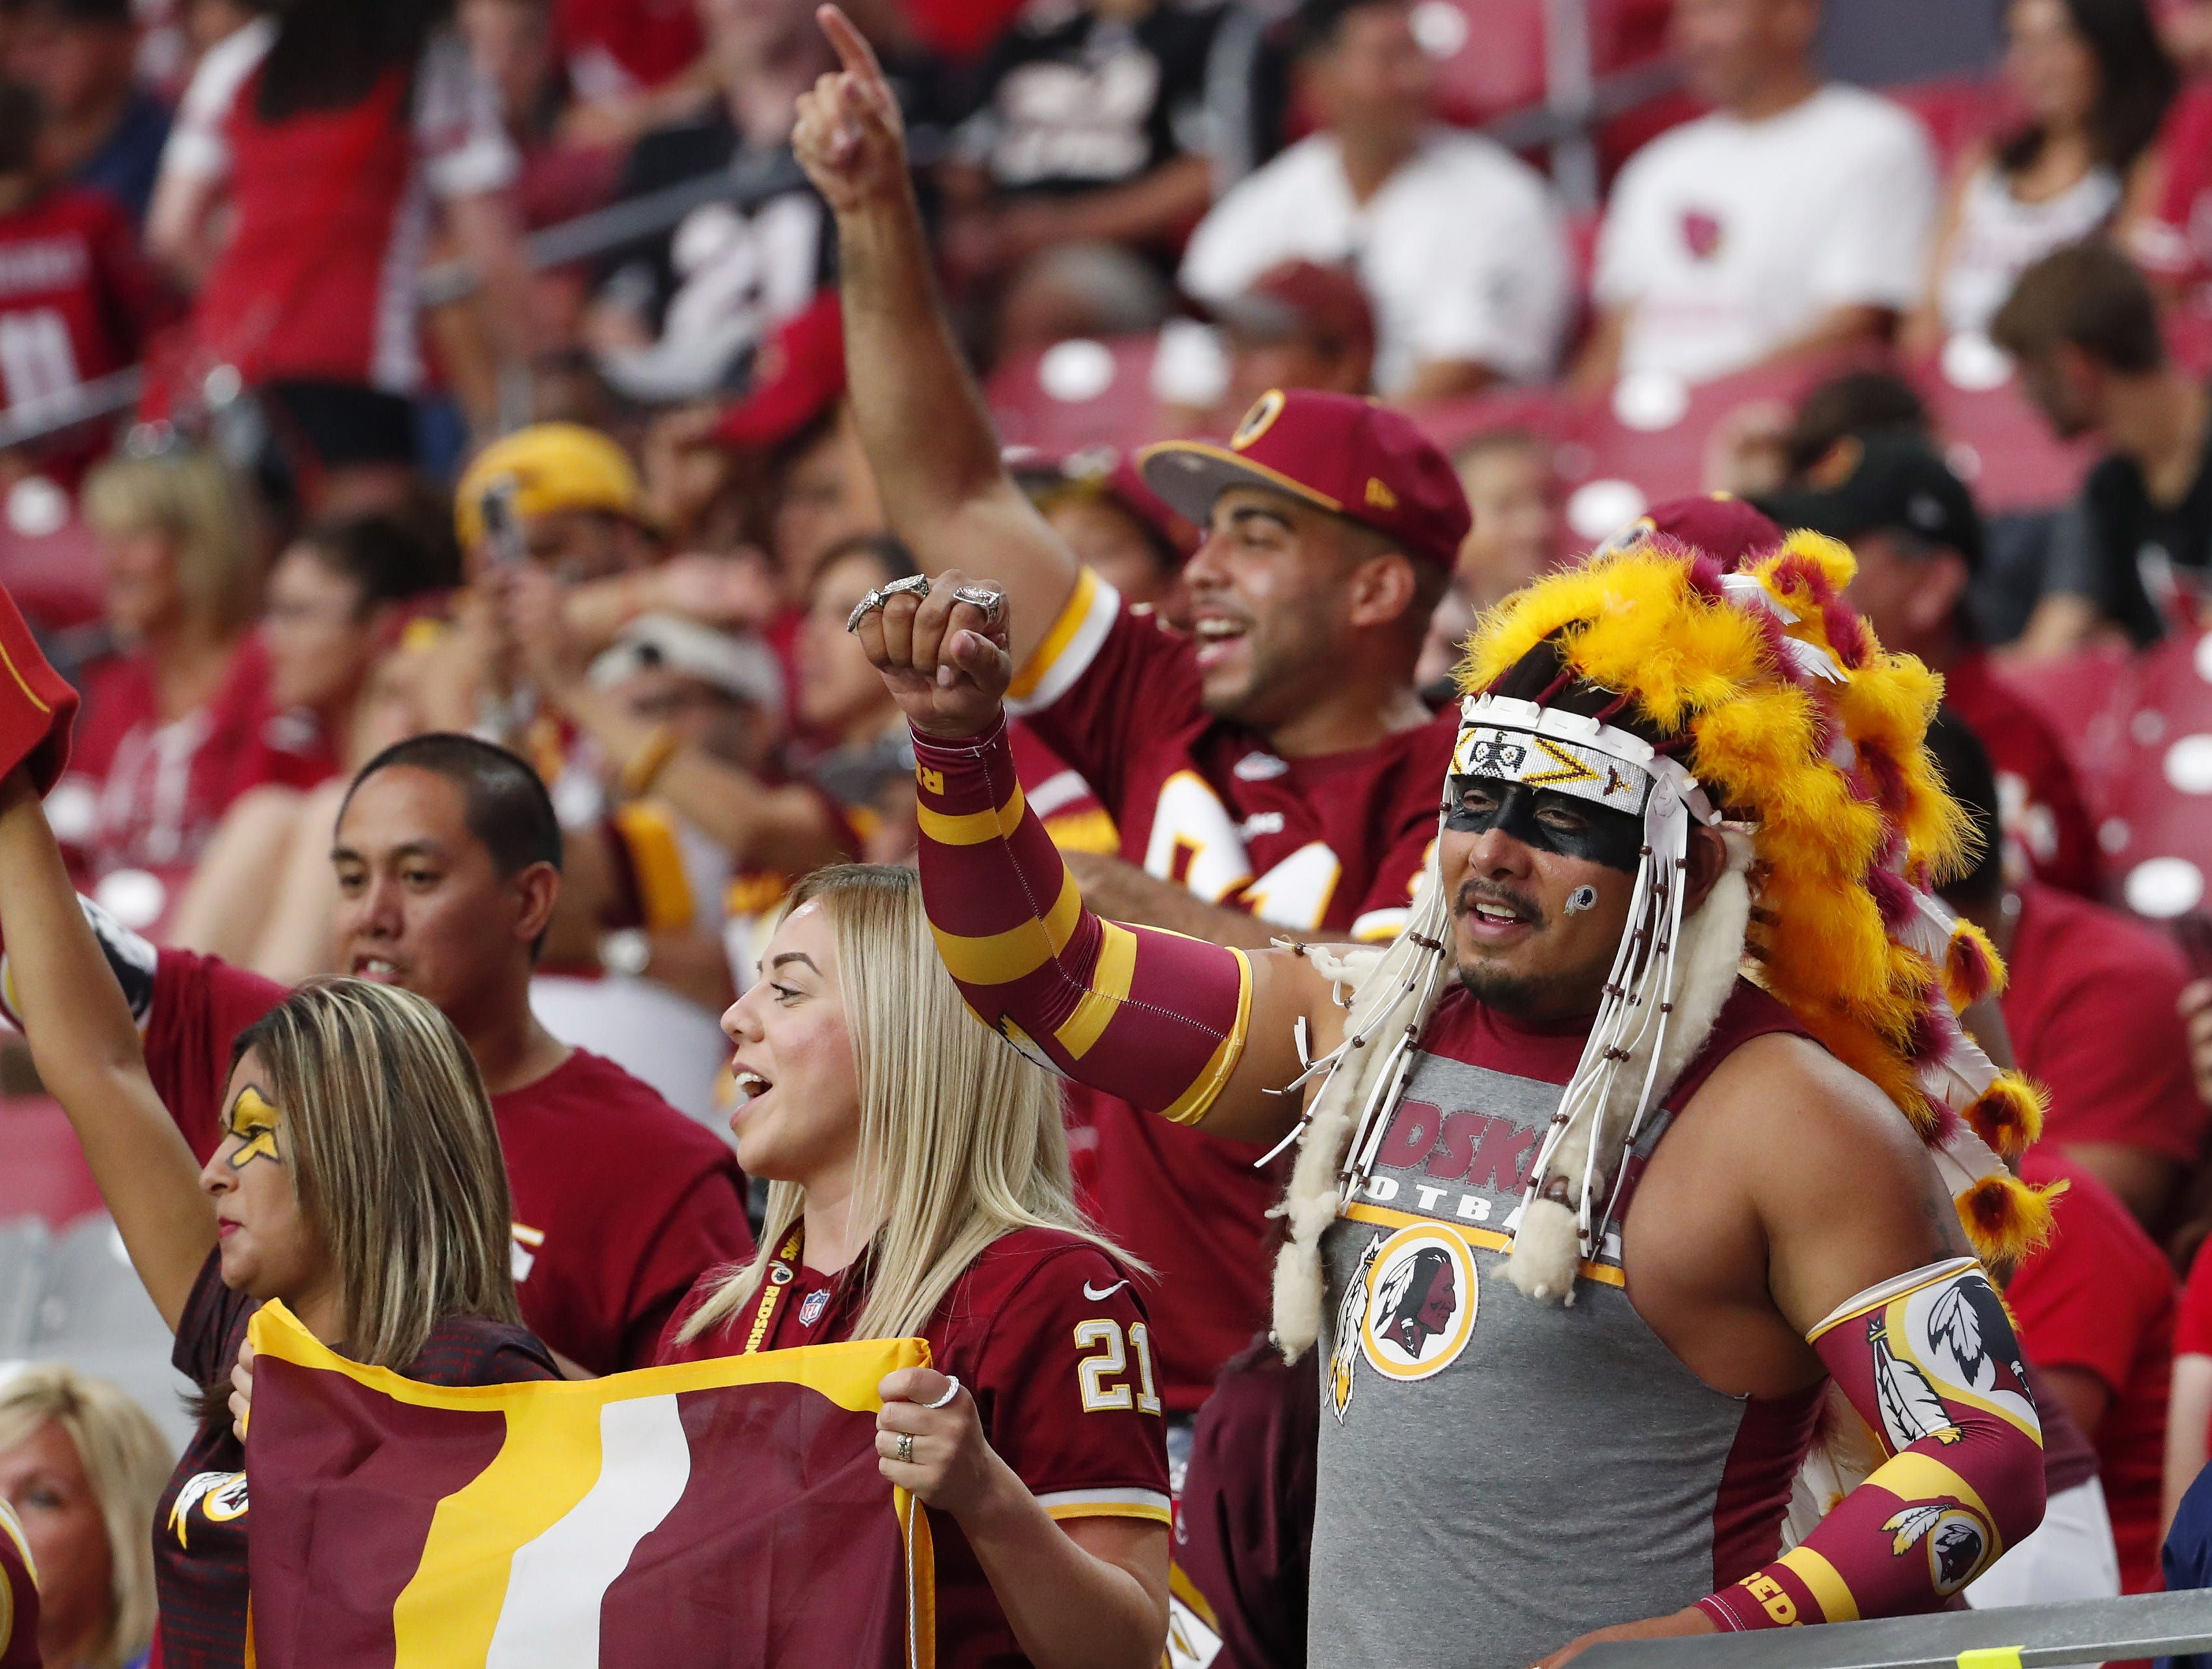 Washington Redskins fans cheer during their 24-6 victory against the Arizona Cardinals at State Farm Stadium in Glendale, Ariz. September 9. 2018.